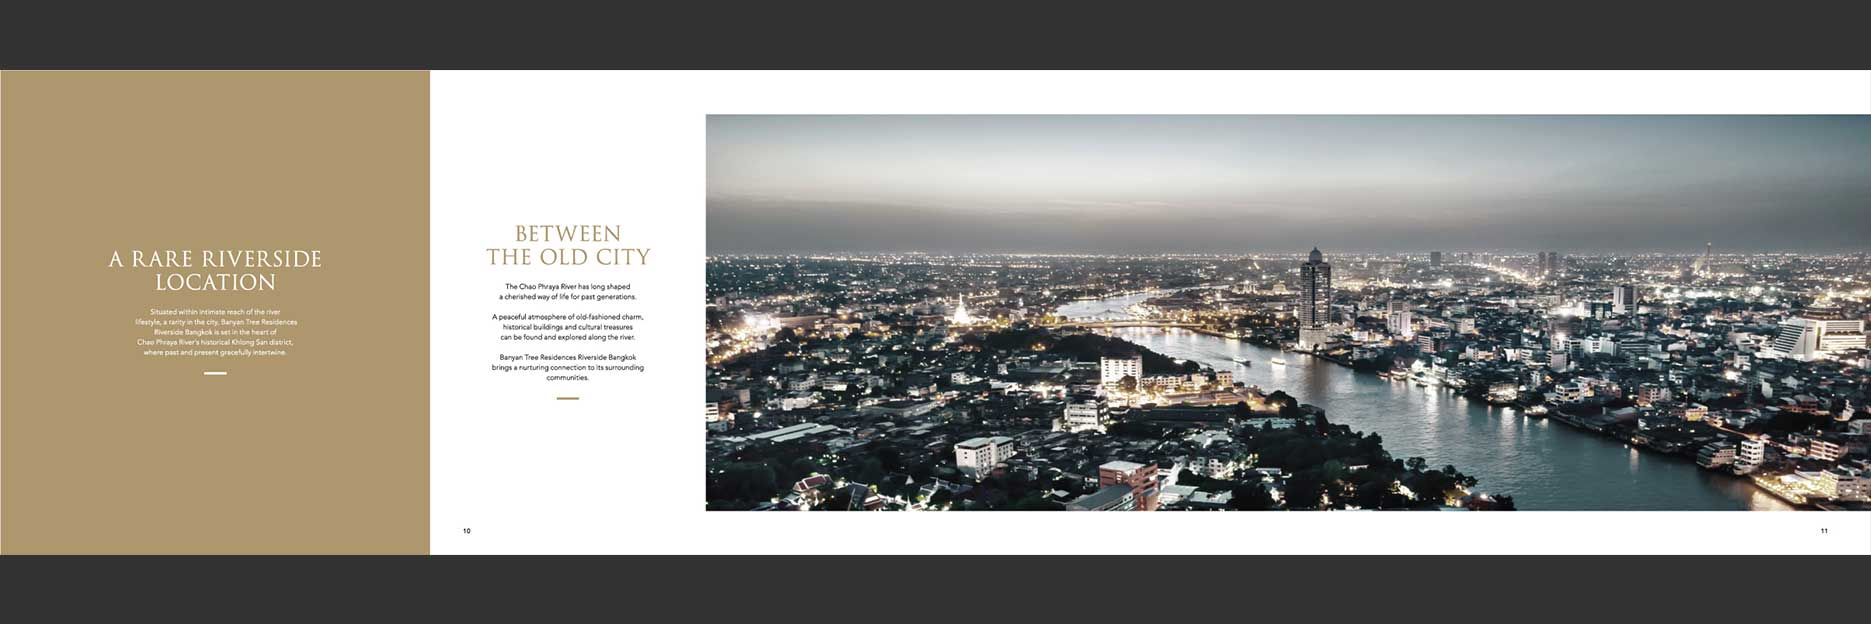 Banyan Tree Residences Riverside Bangkok Brochure 7